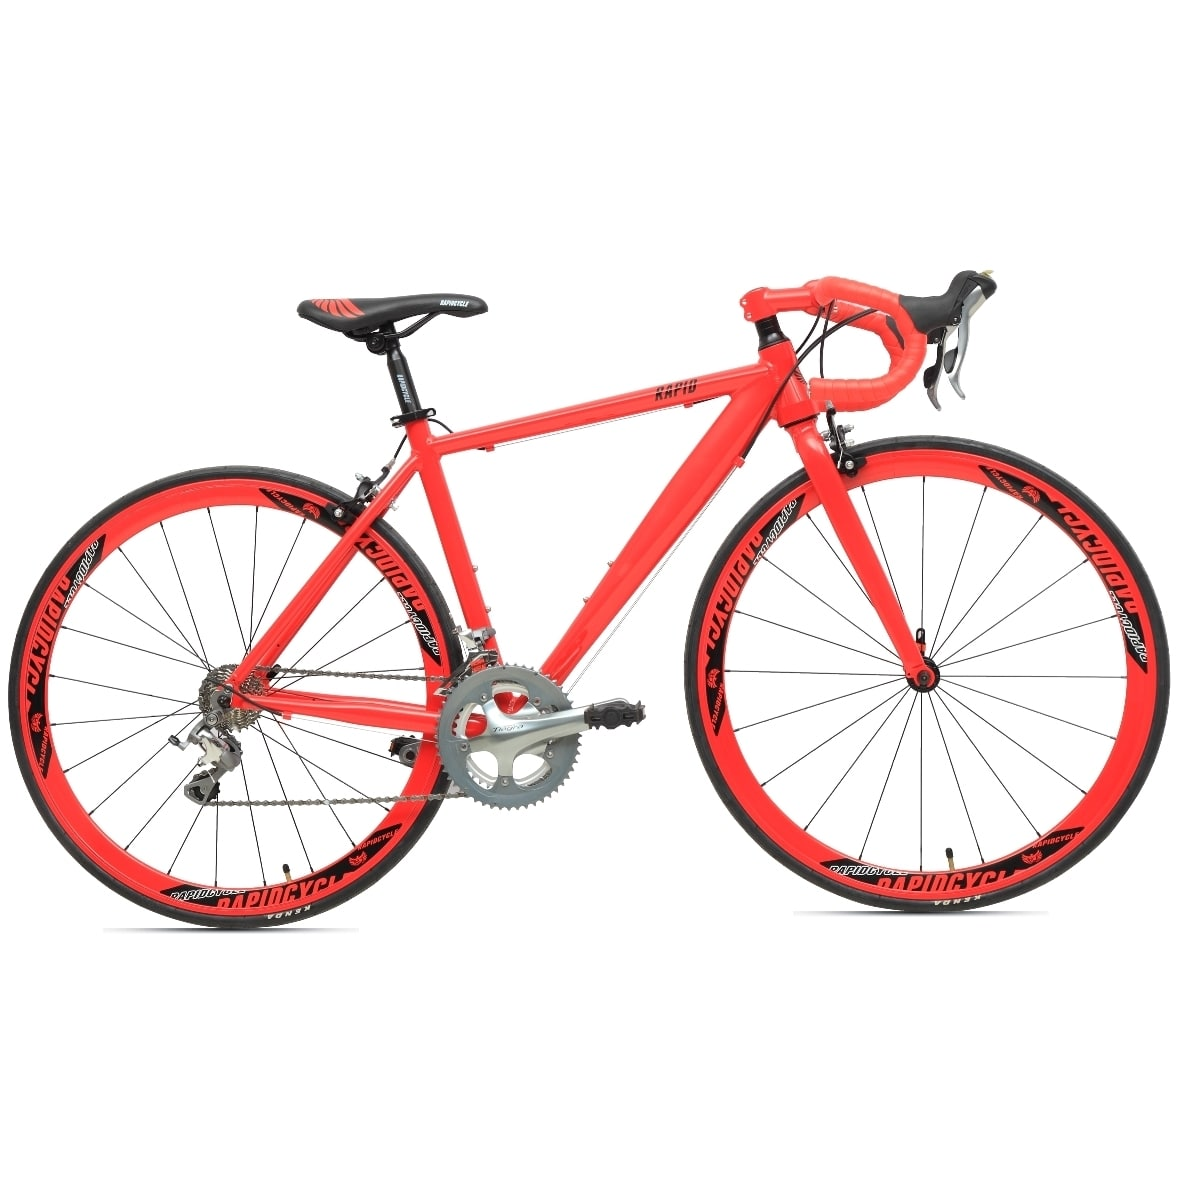 RapidCycle  Grand 20-speed Unisex Road Bike with Shimano Groupset (2 Size Options)